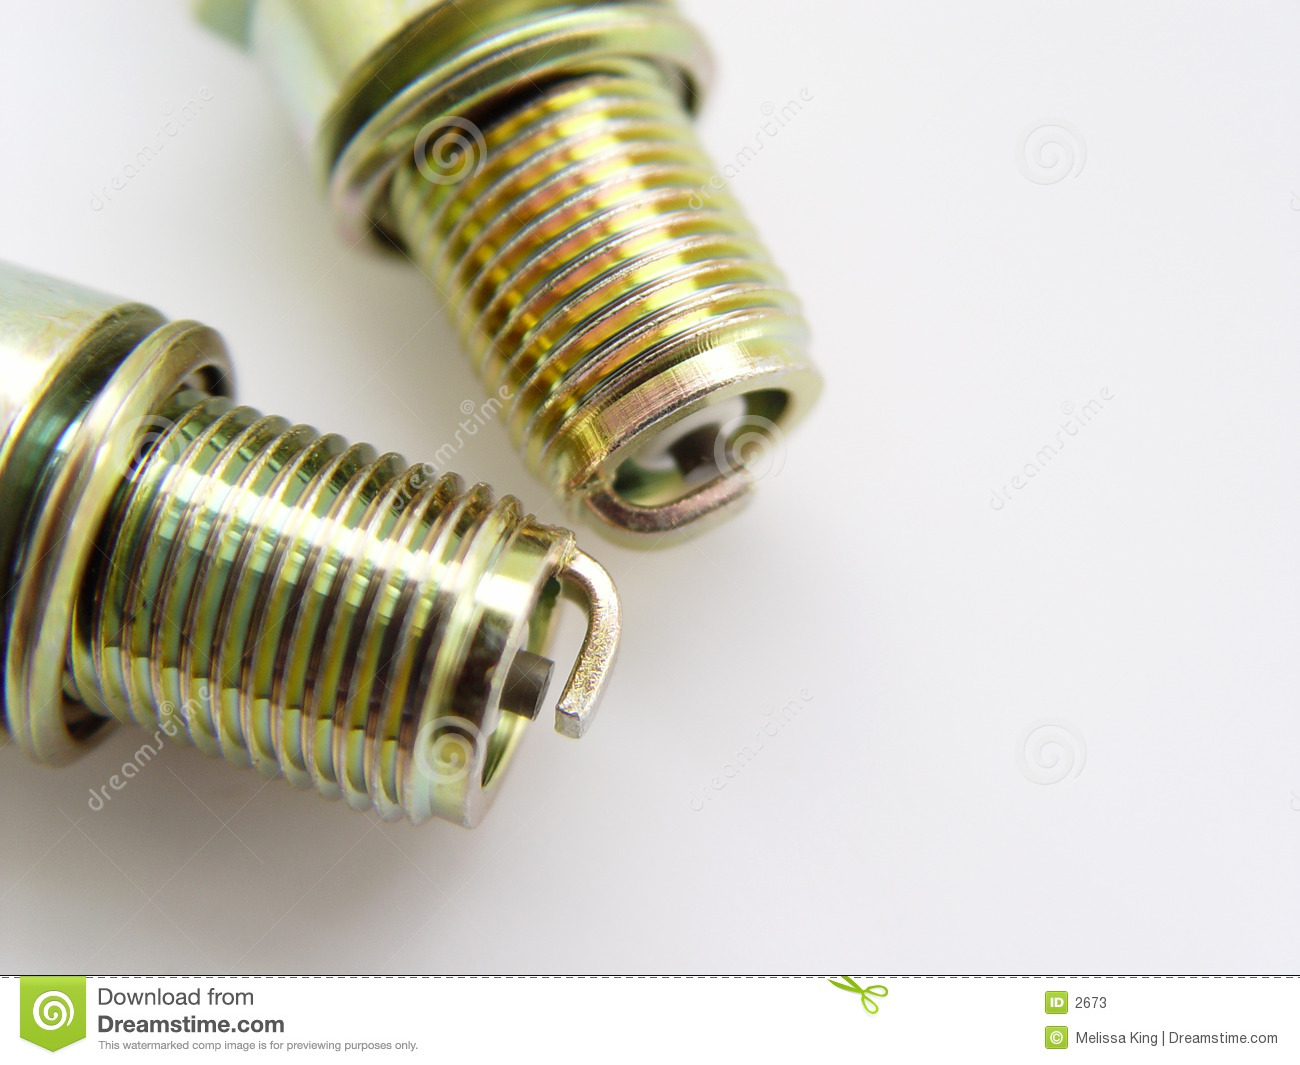 Closeup of two Spark Plugs